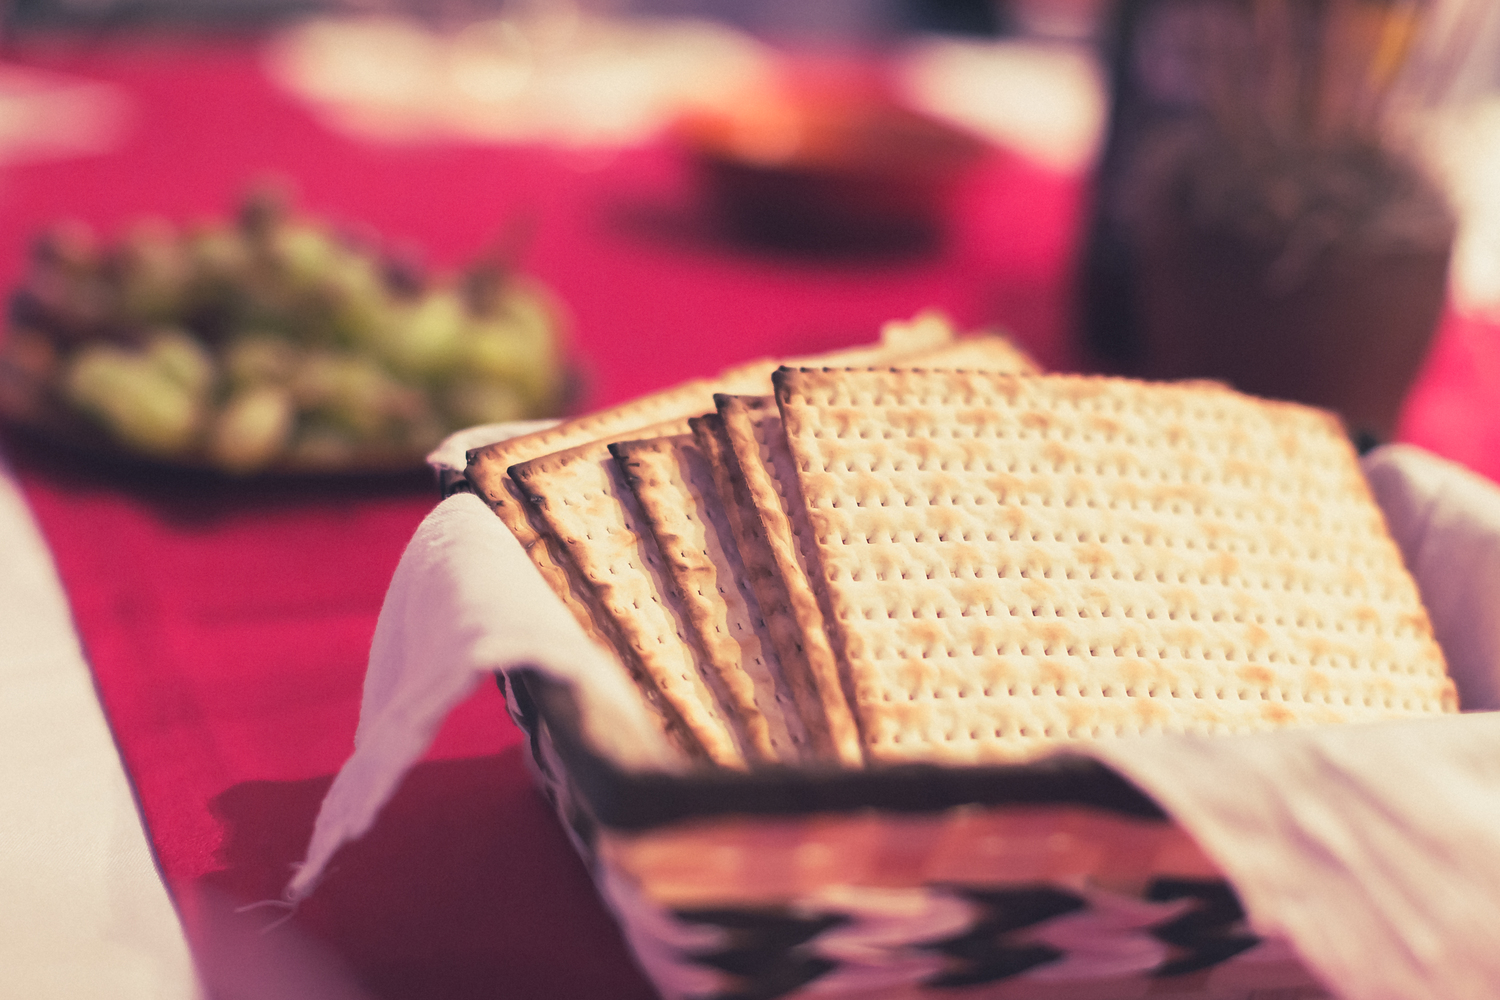 where can i buy unleavened bread